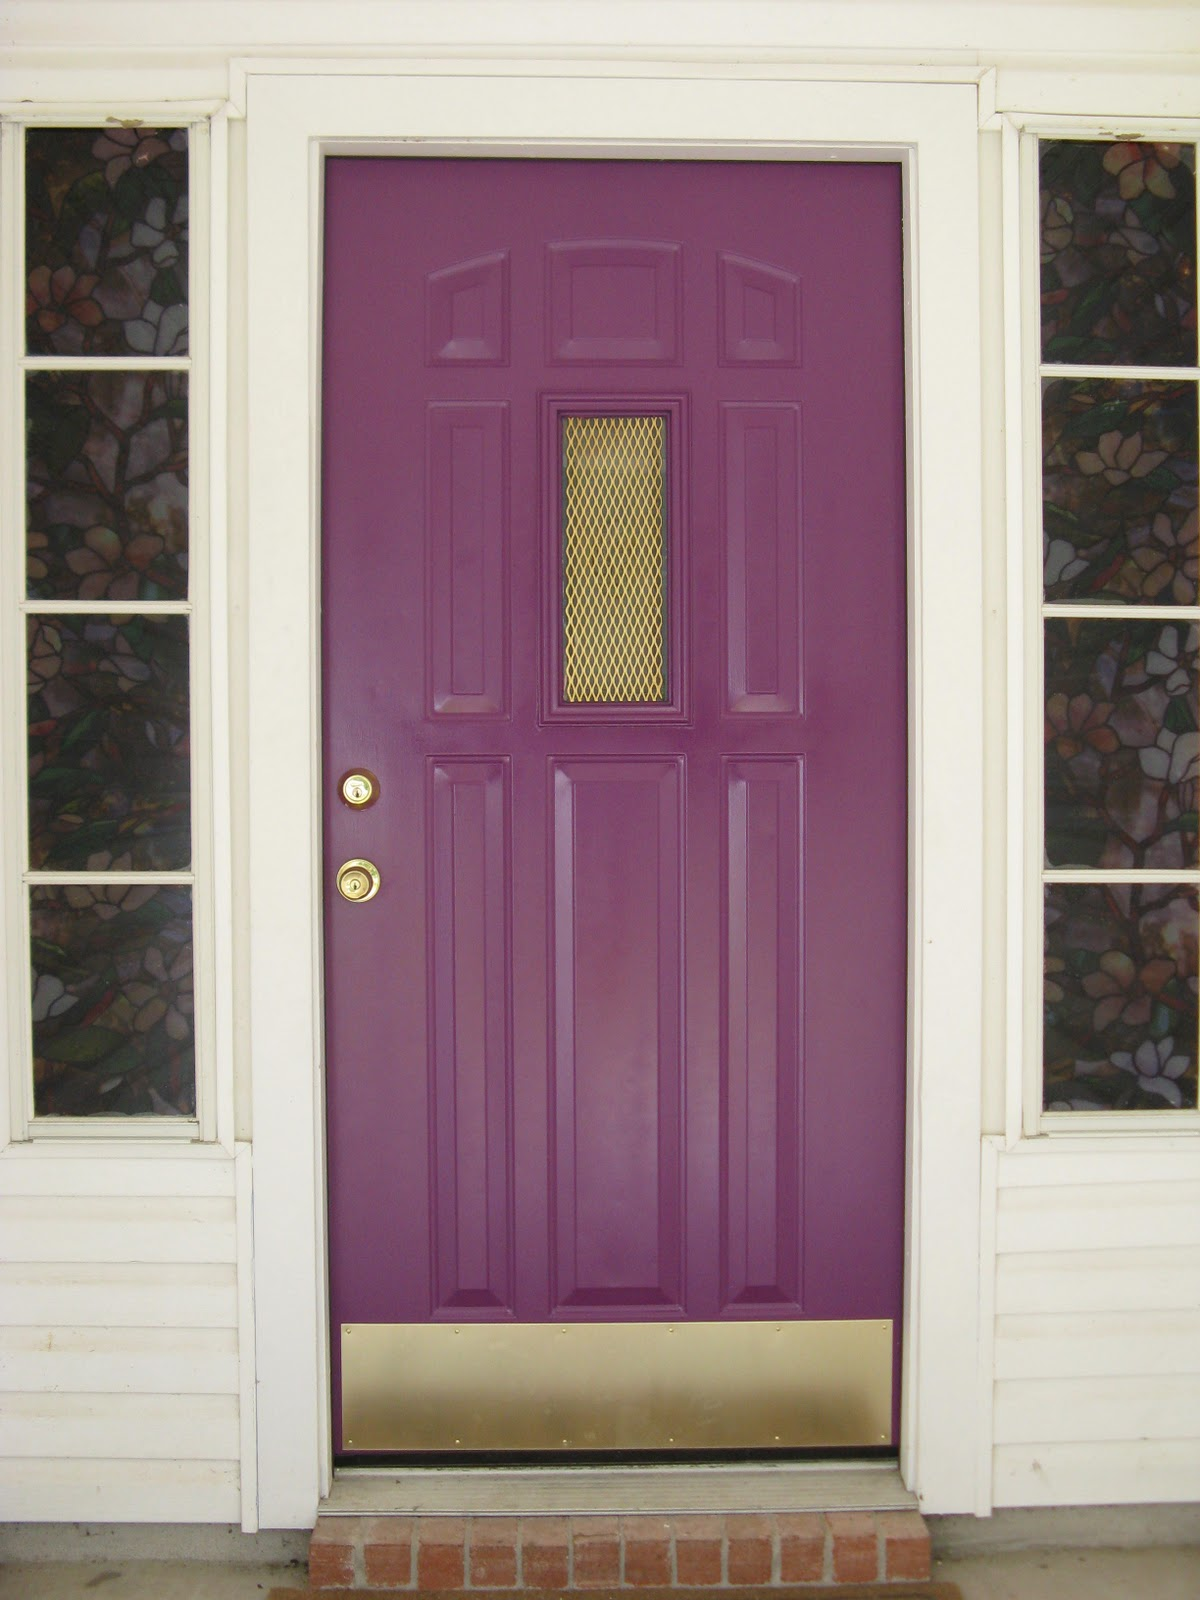 1600 #7C6847 And Now Tell Me What Color Is Your Front Door? Does It Match Your  wallpaper Purple Front Doors 47051200